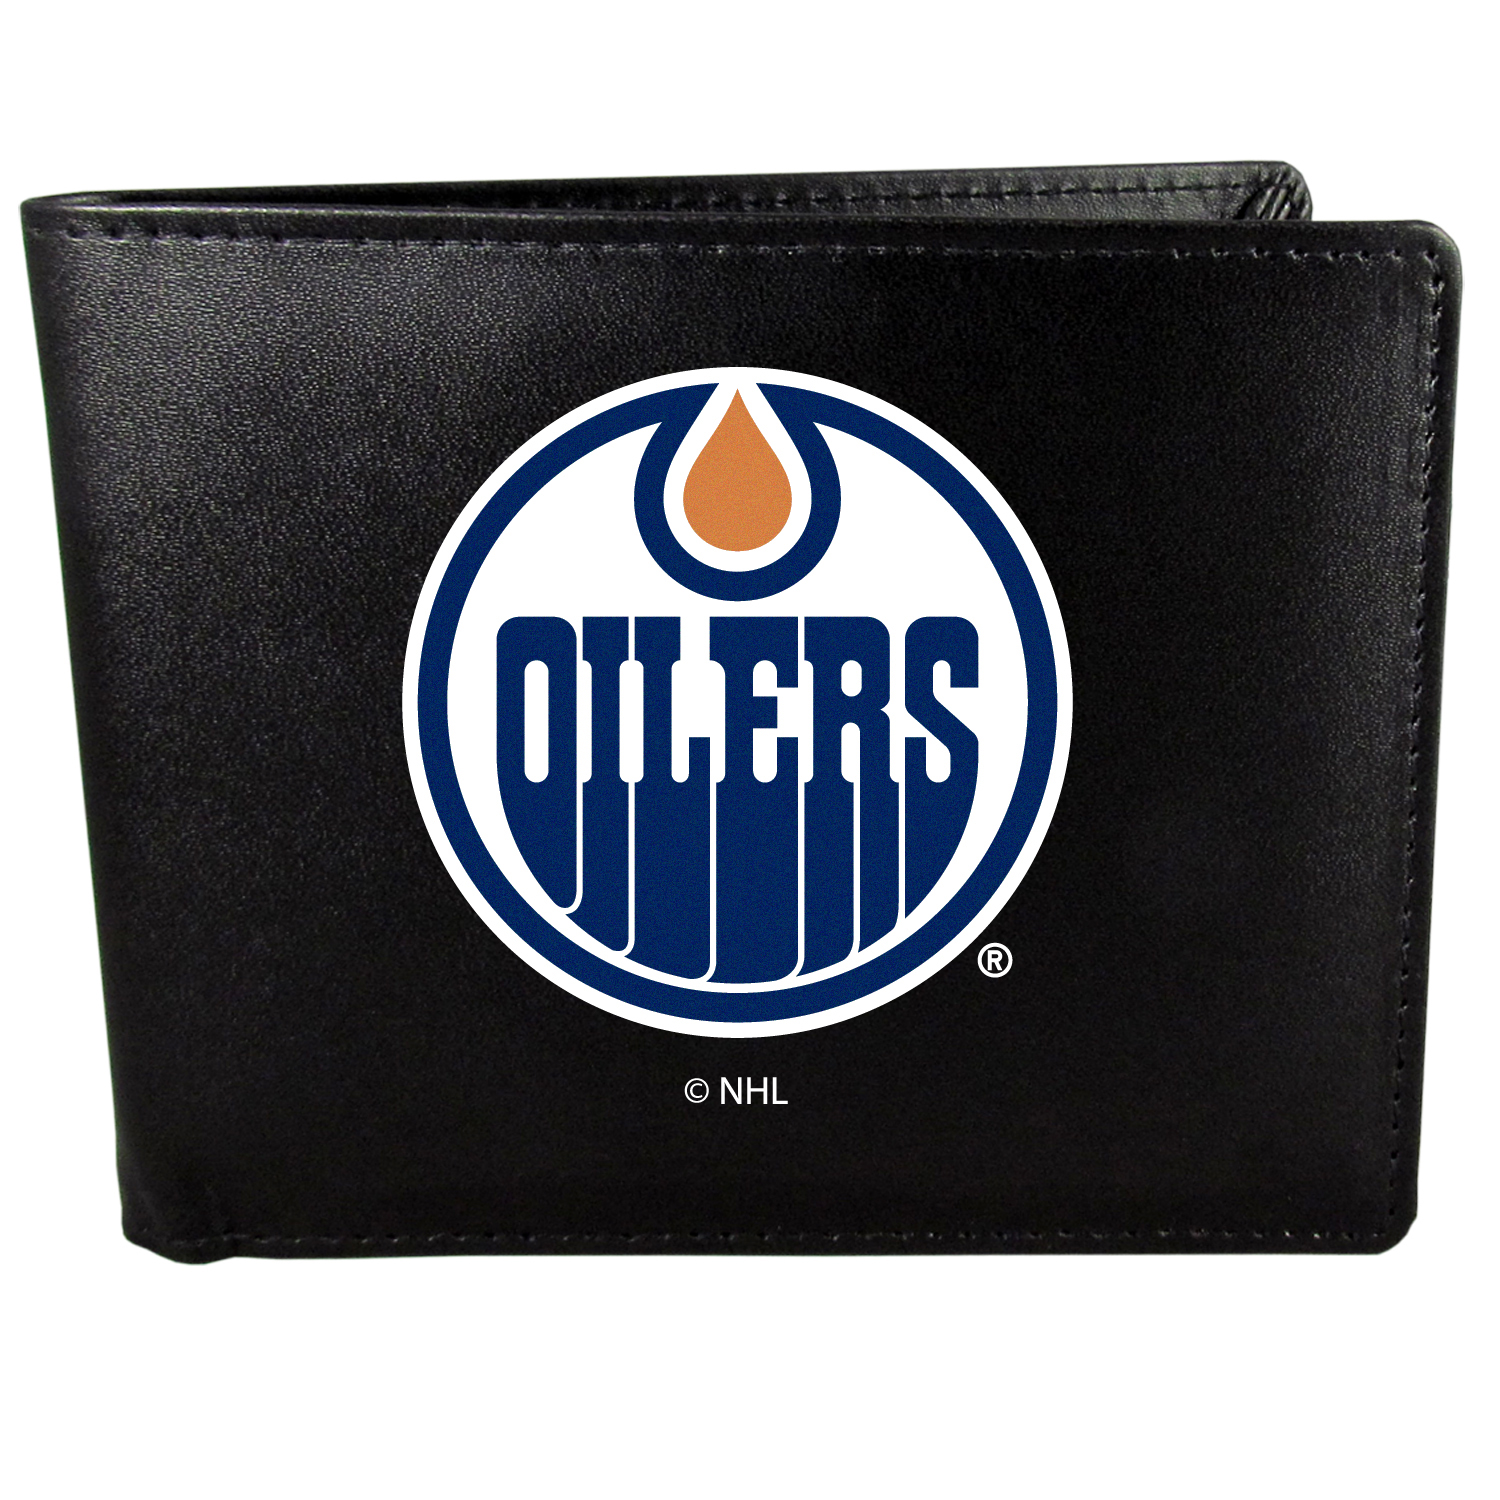 Edmonton Oilers Bi-fold Wallet Large Logo - Sports fans do not have to sacrifice style with this classic bi-fold wallet that sports the Edmonton Oilers?extra large logo. This men's fashion accessory has a leather grain look and expert craftmanship for a quality wallet at a great price. The wallet features inner credit card slots, windowed ID slot and a large billfold pocket. The front of the wallet features a printed team logo.